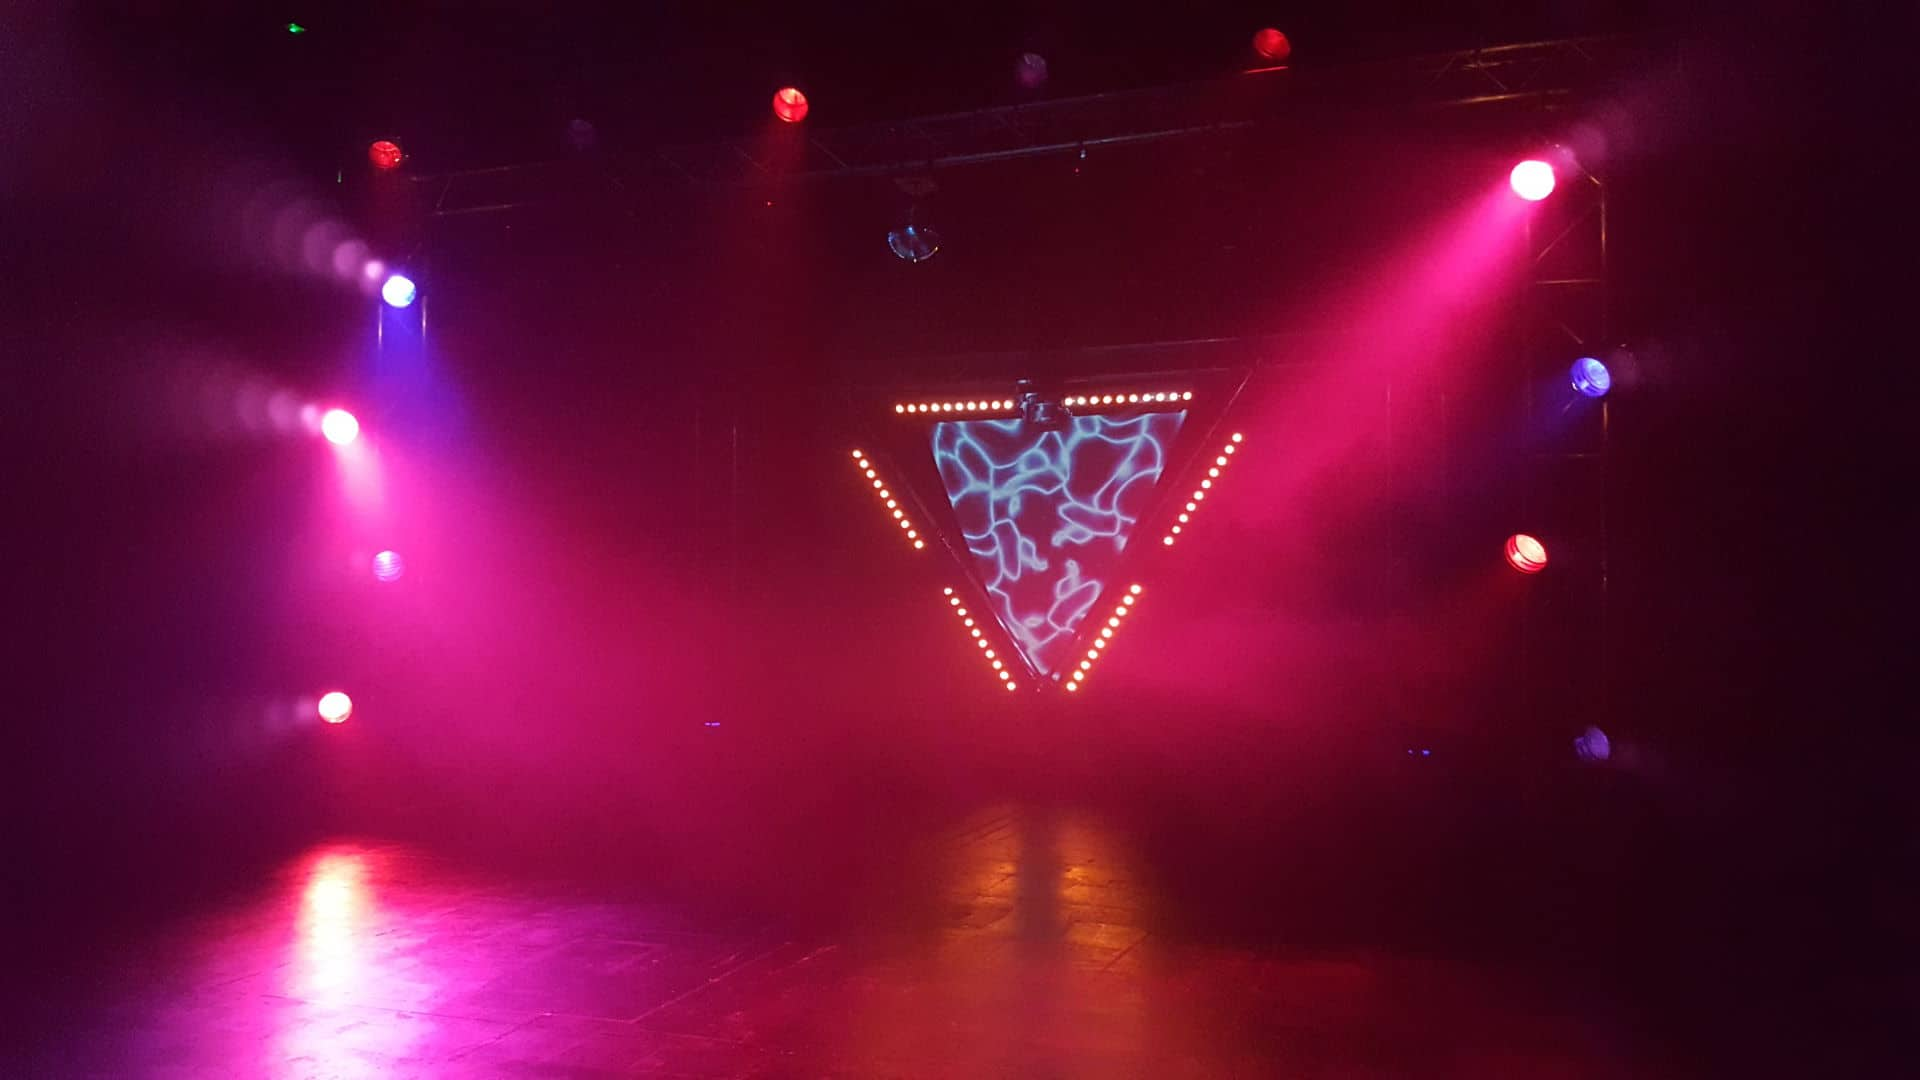 Stage lit with coloured lighting.